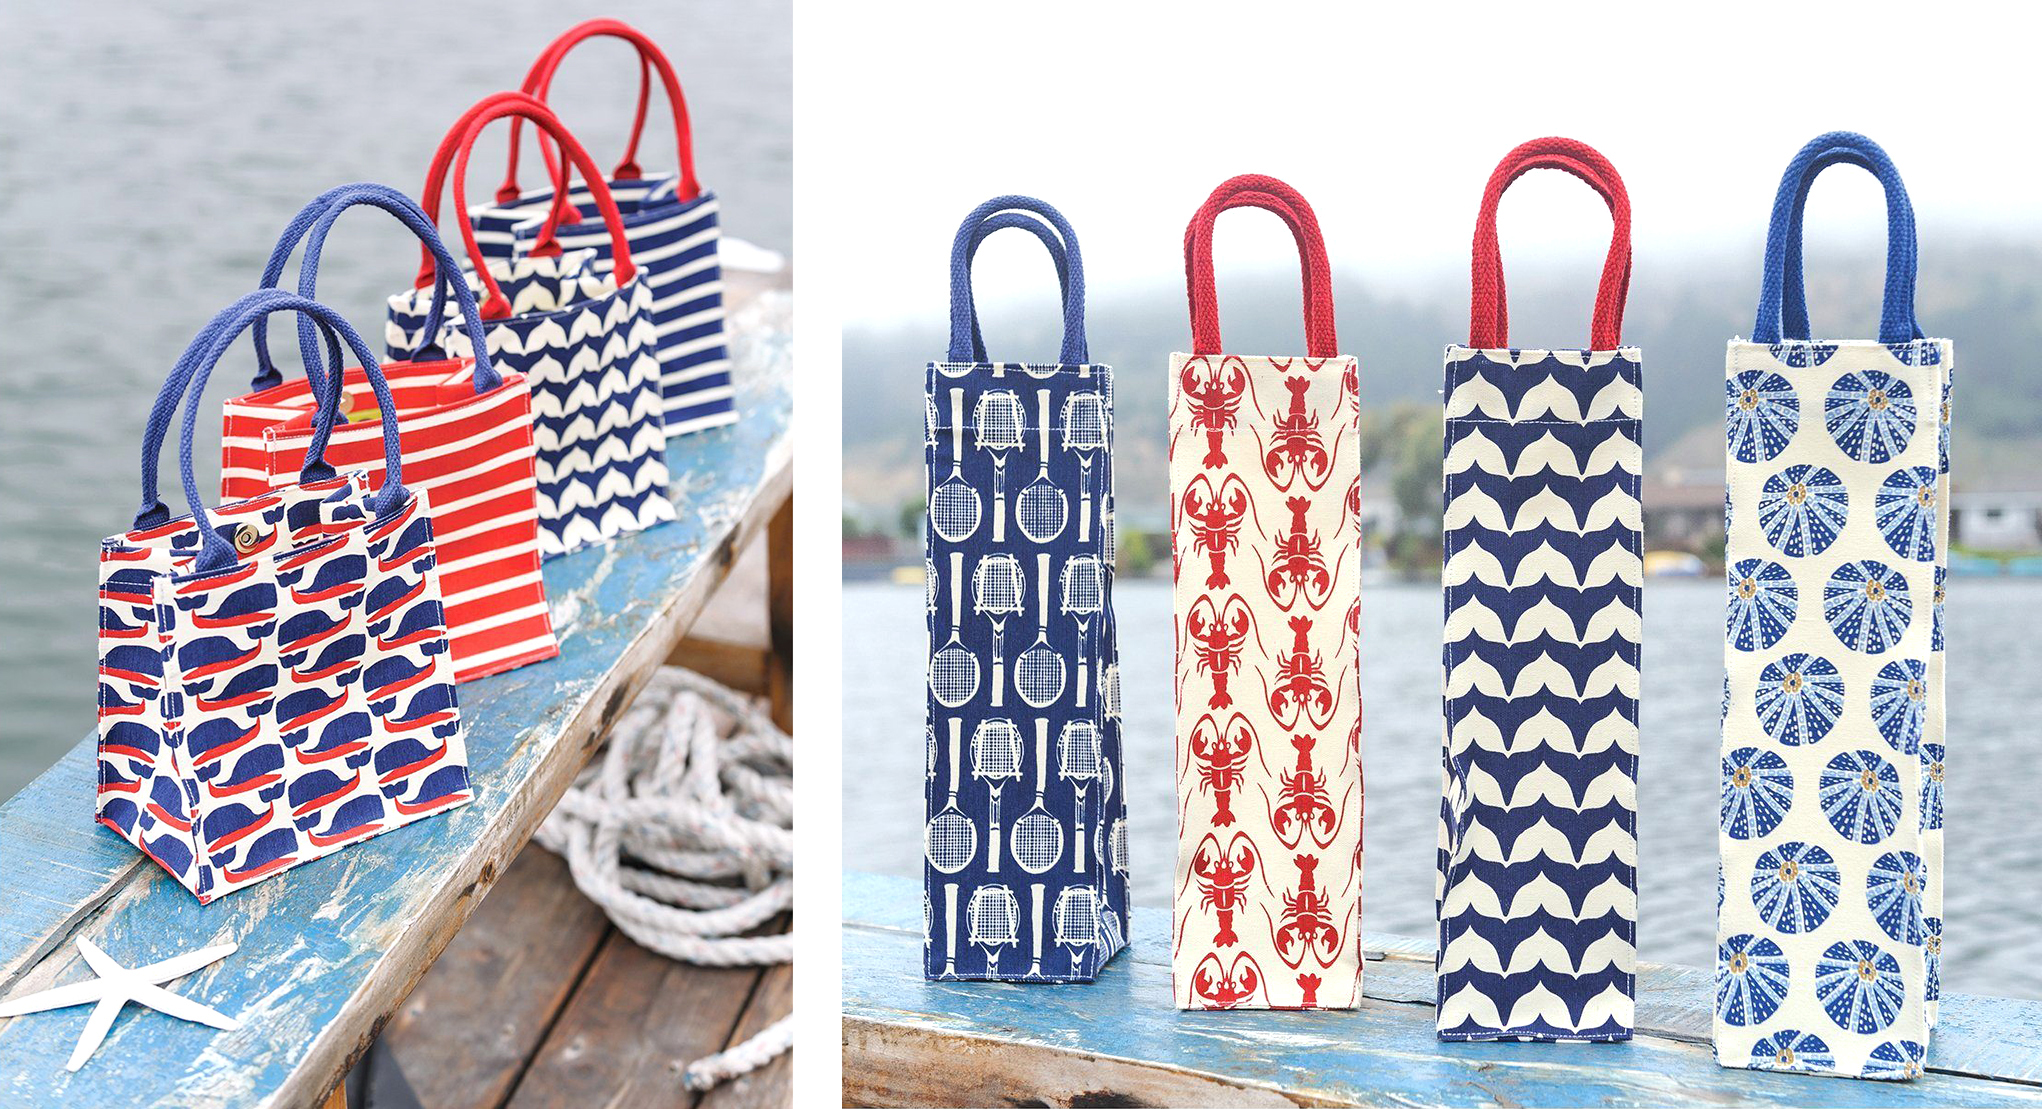 canvas gift bags and wine gift bags in red, white, and blue, with prints such as whales, stripes, lobsters, vintage tennis rackets, and sea urchins